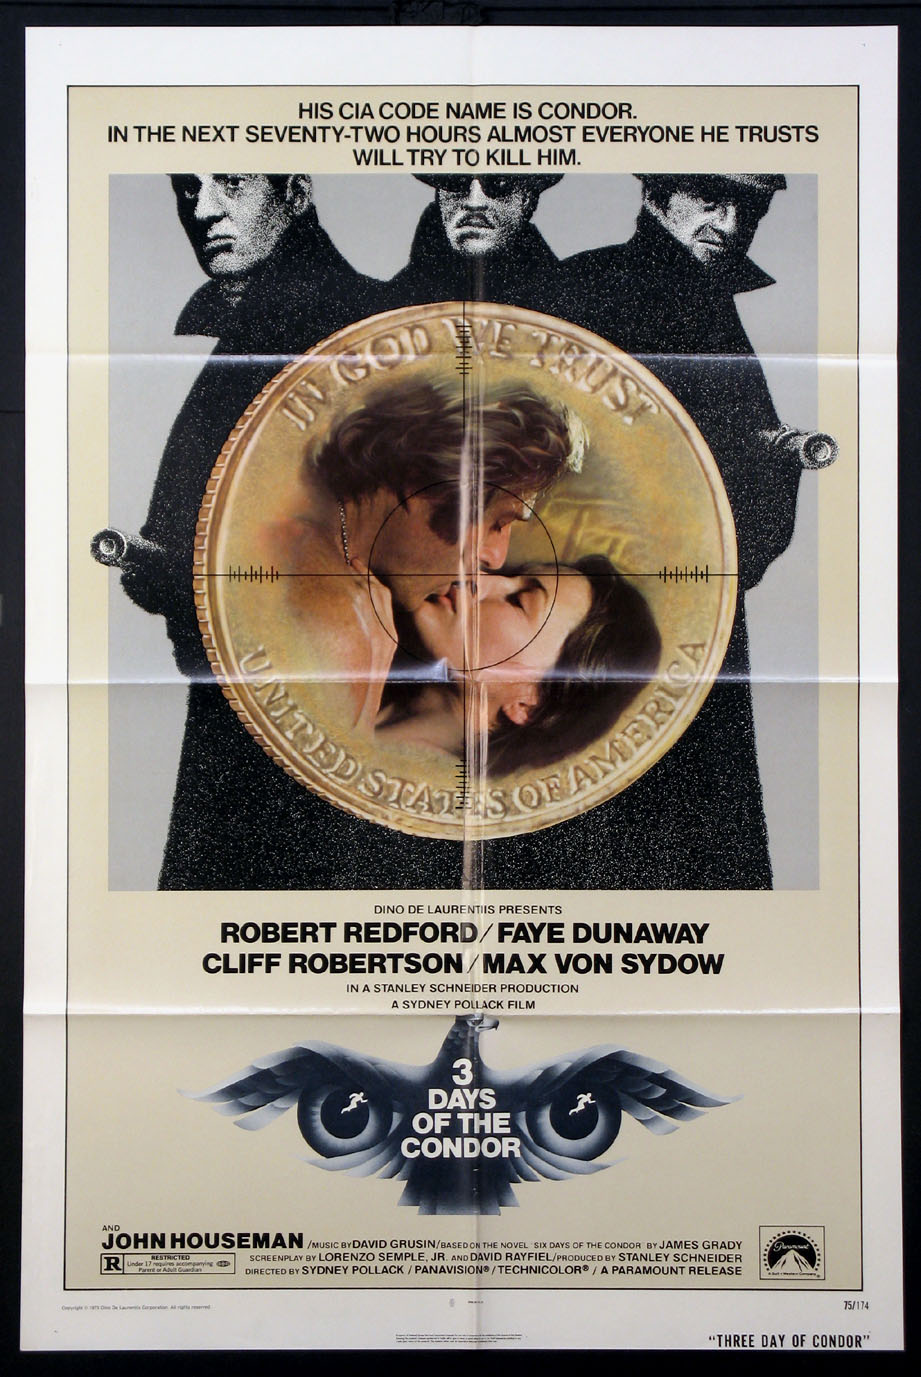 THREE DAYS OF THE CONDOR @ FilmPosters.com